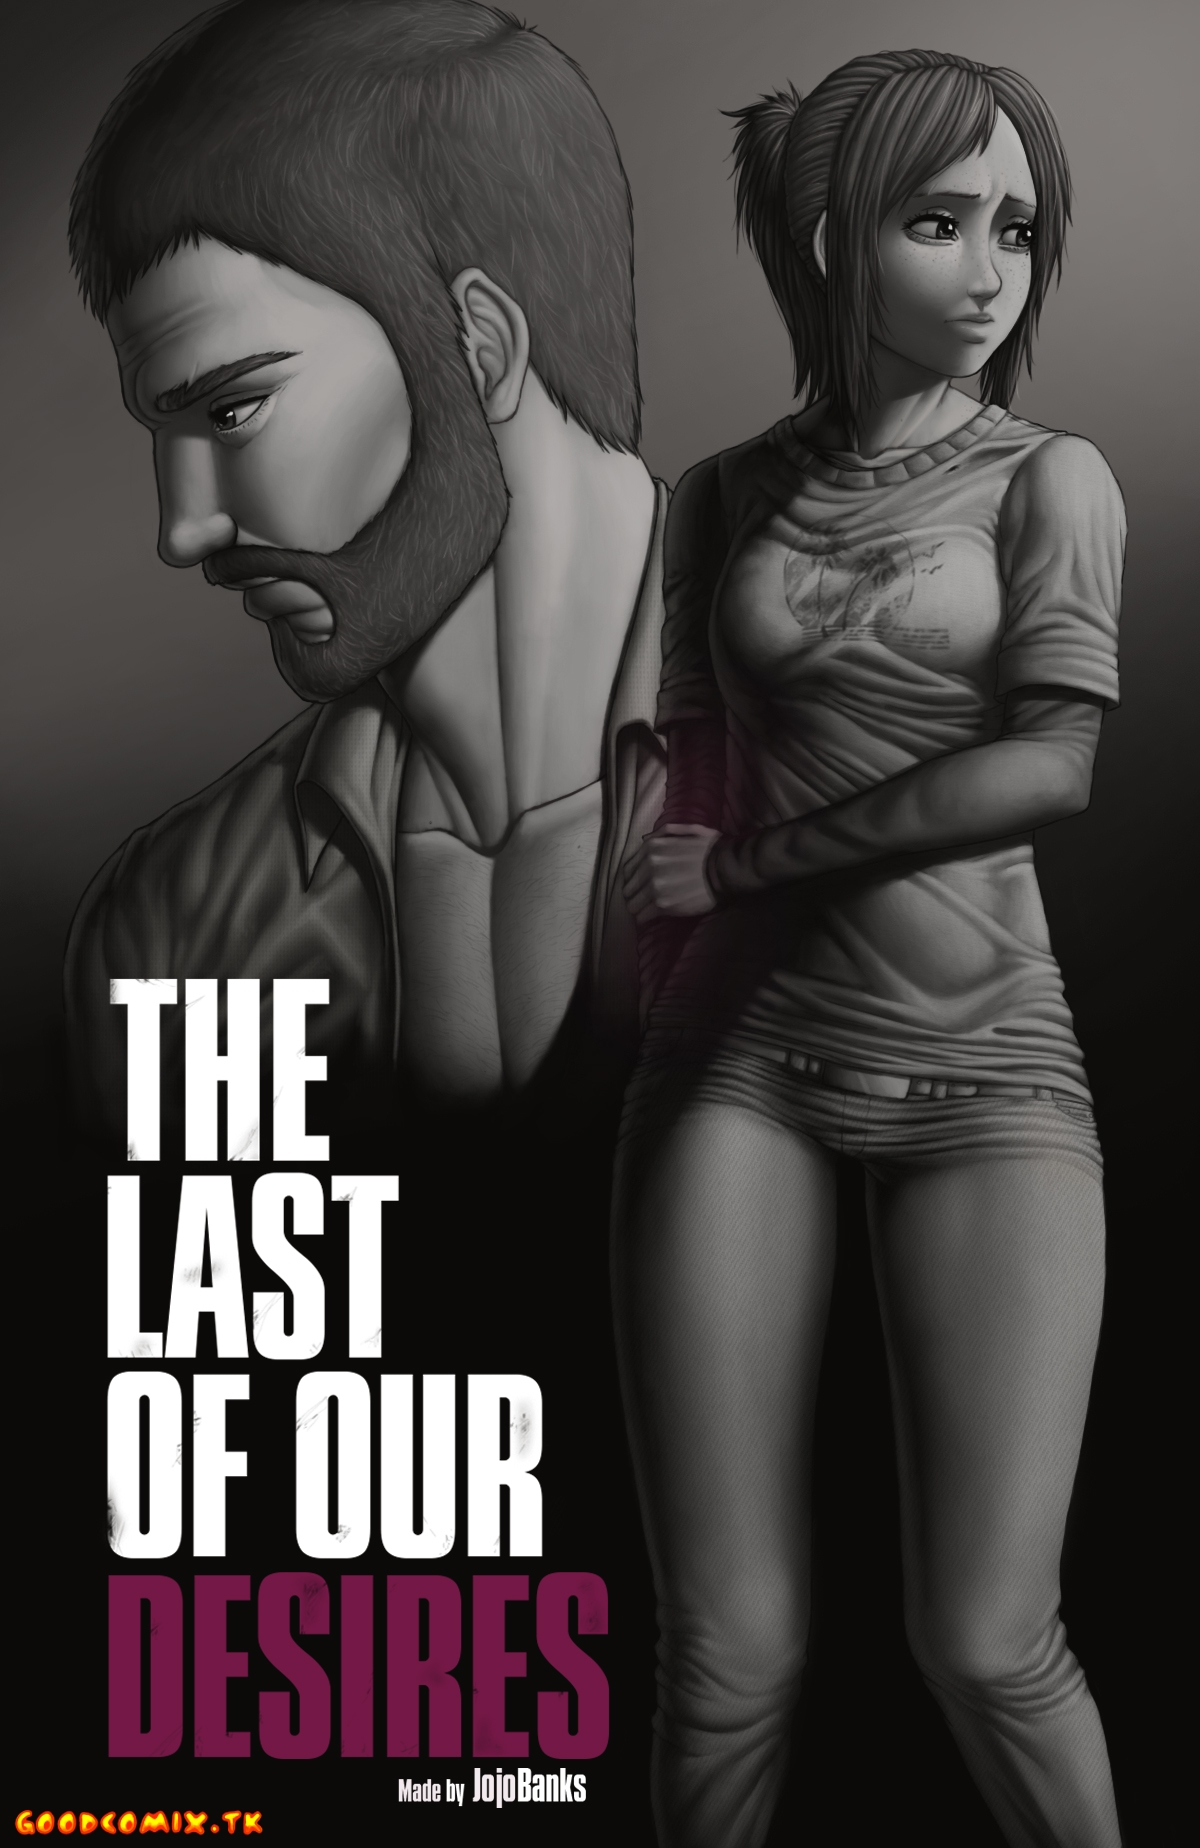 Goodcomix.tk The Last of Us - [JojoBanks] - The Last of Our Desires